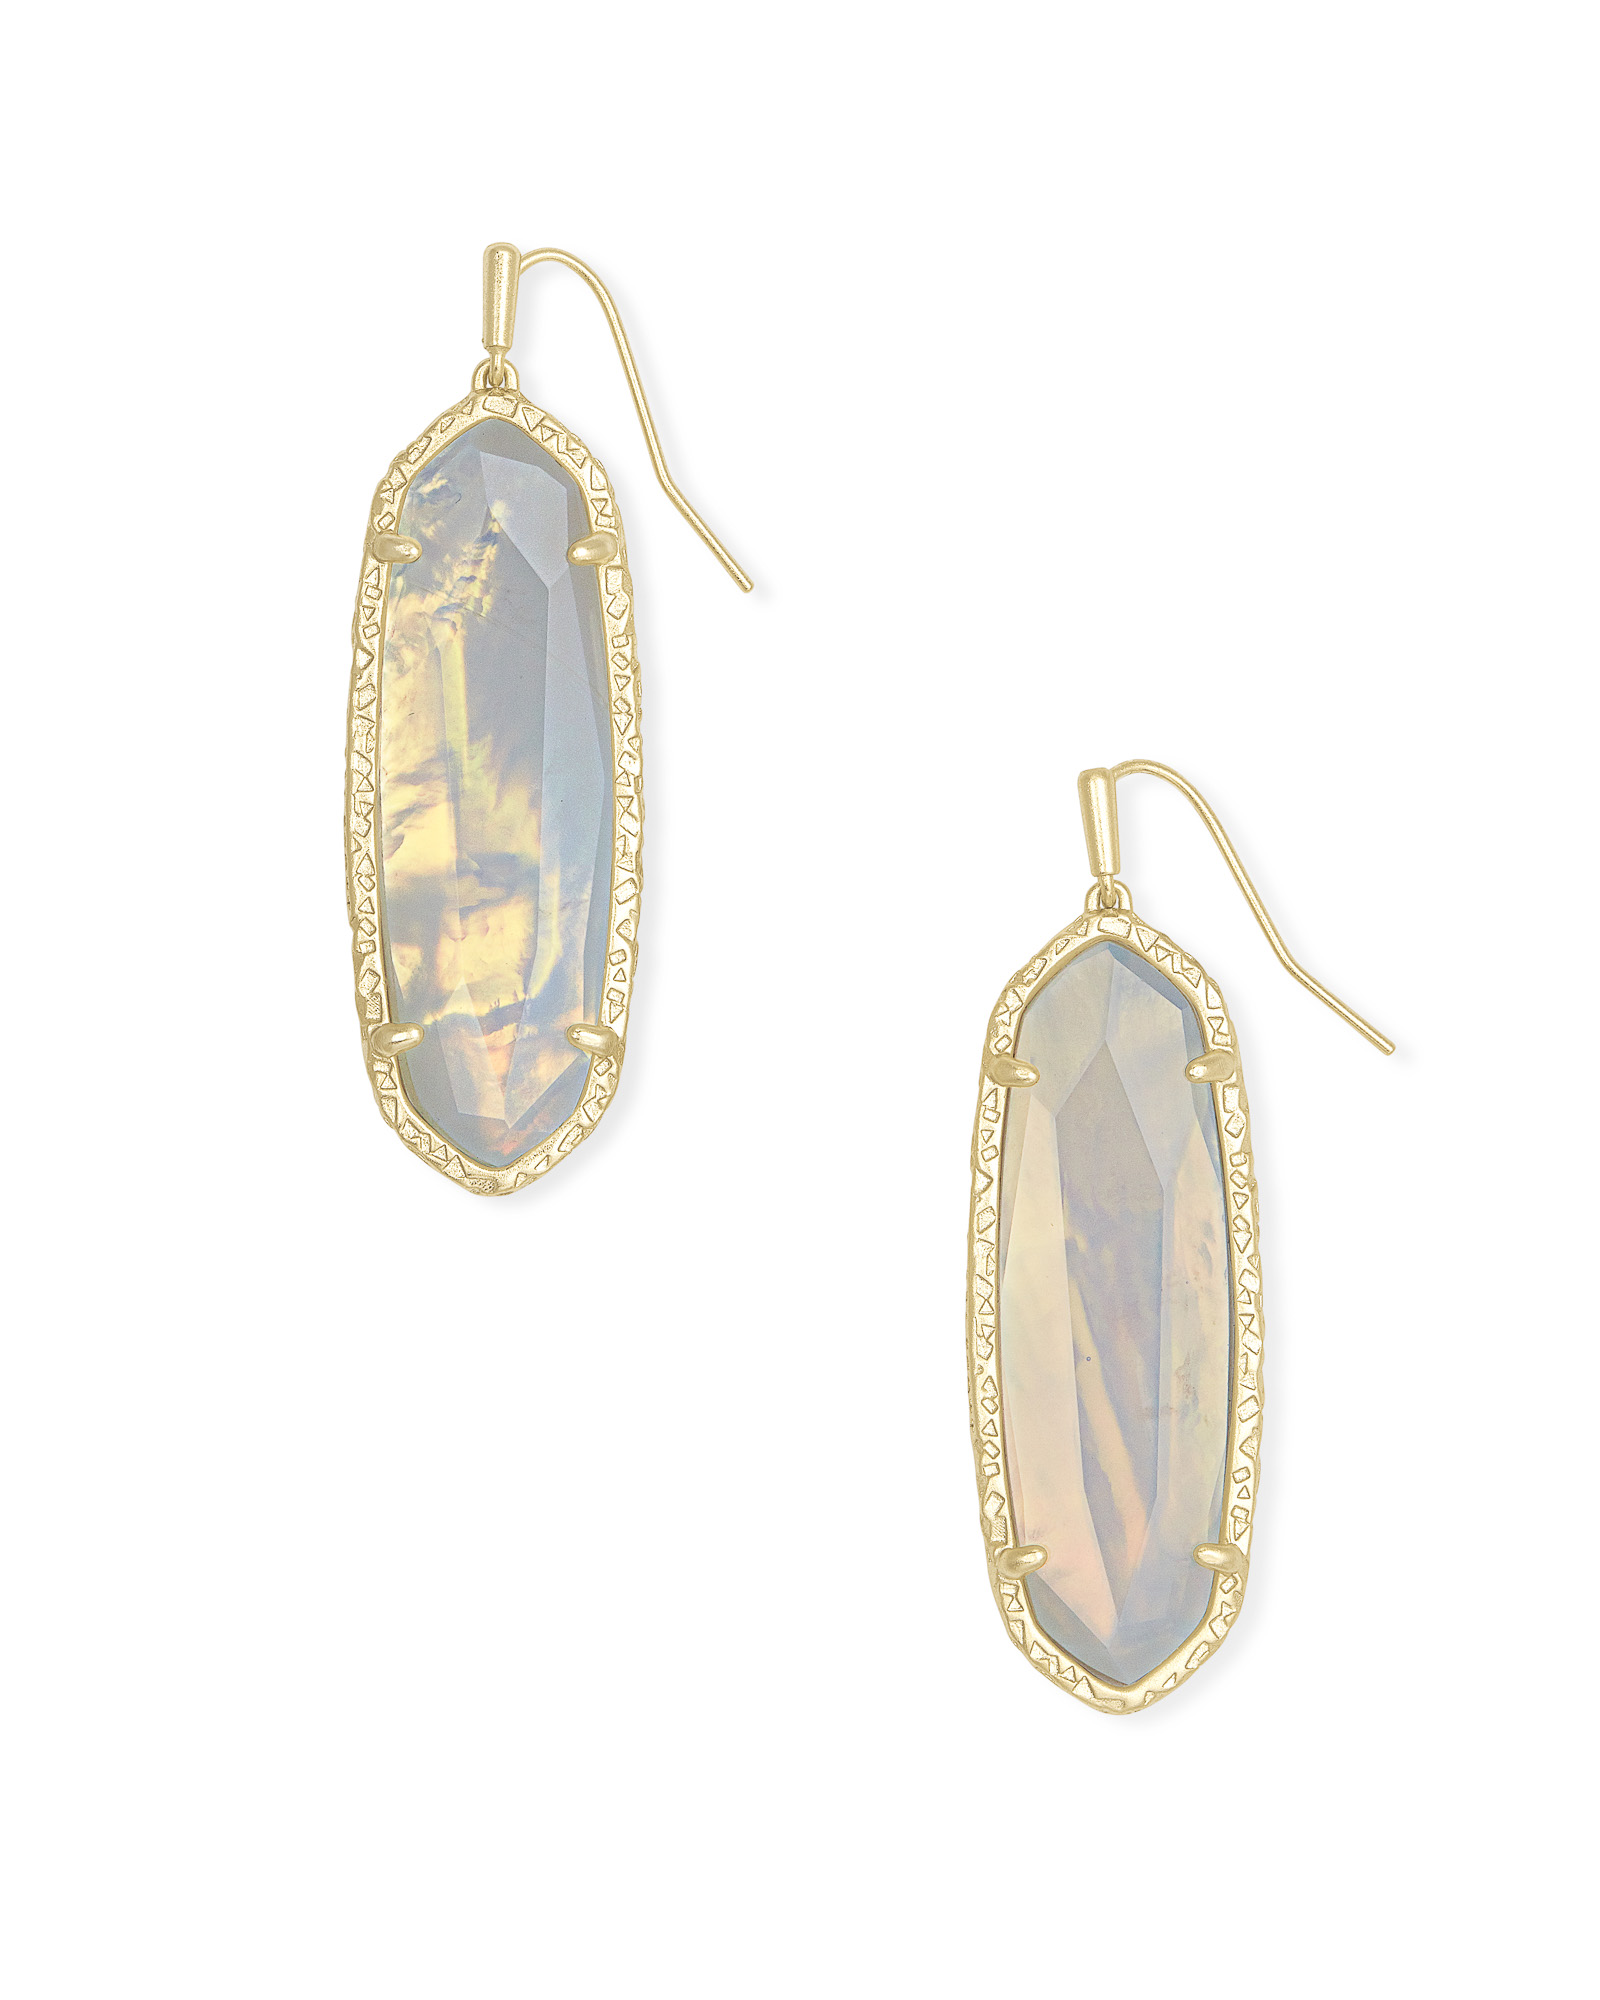 Layla Gold Drop Earrings in Opalite Illusion